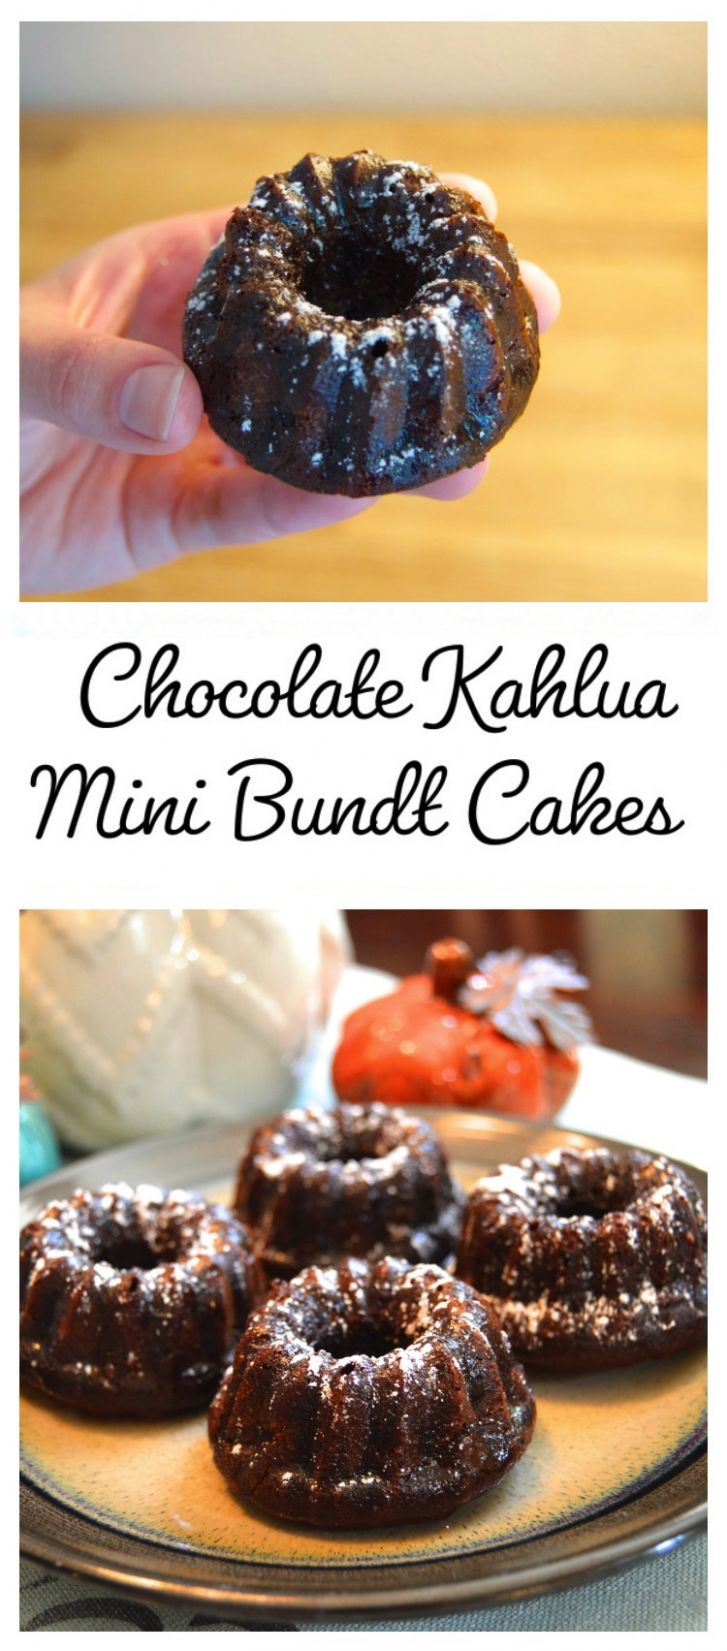 Chocolate Kahlua Mini Bundt Cake Recipe | In a Nutshell..